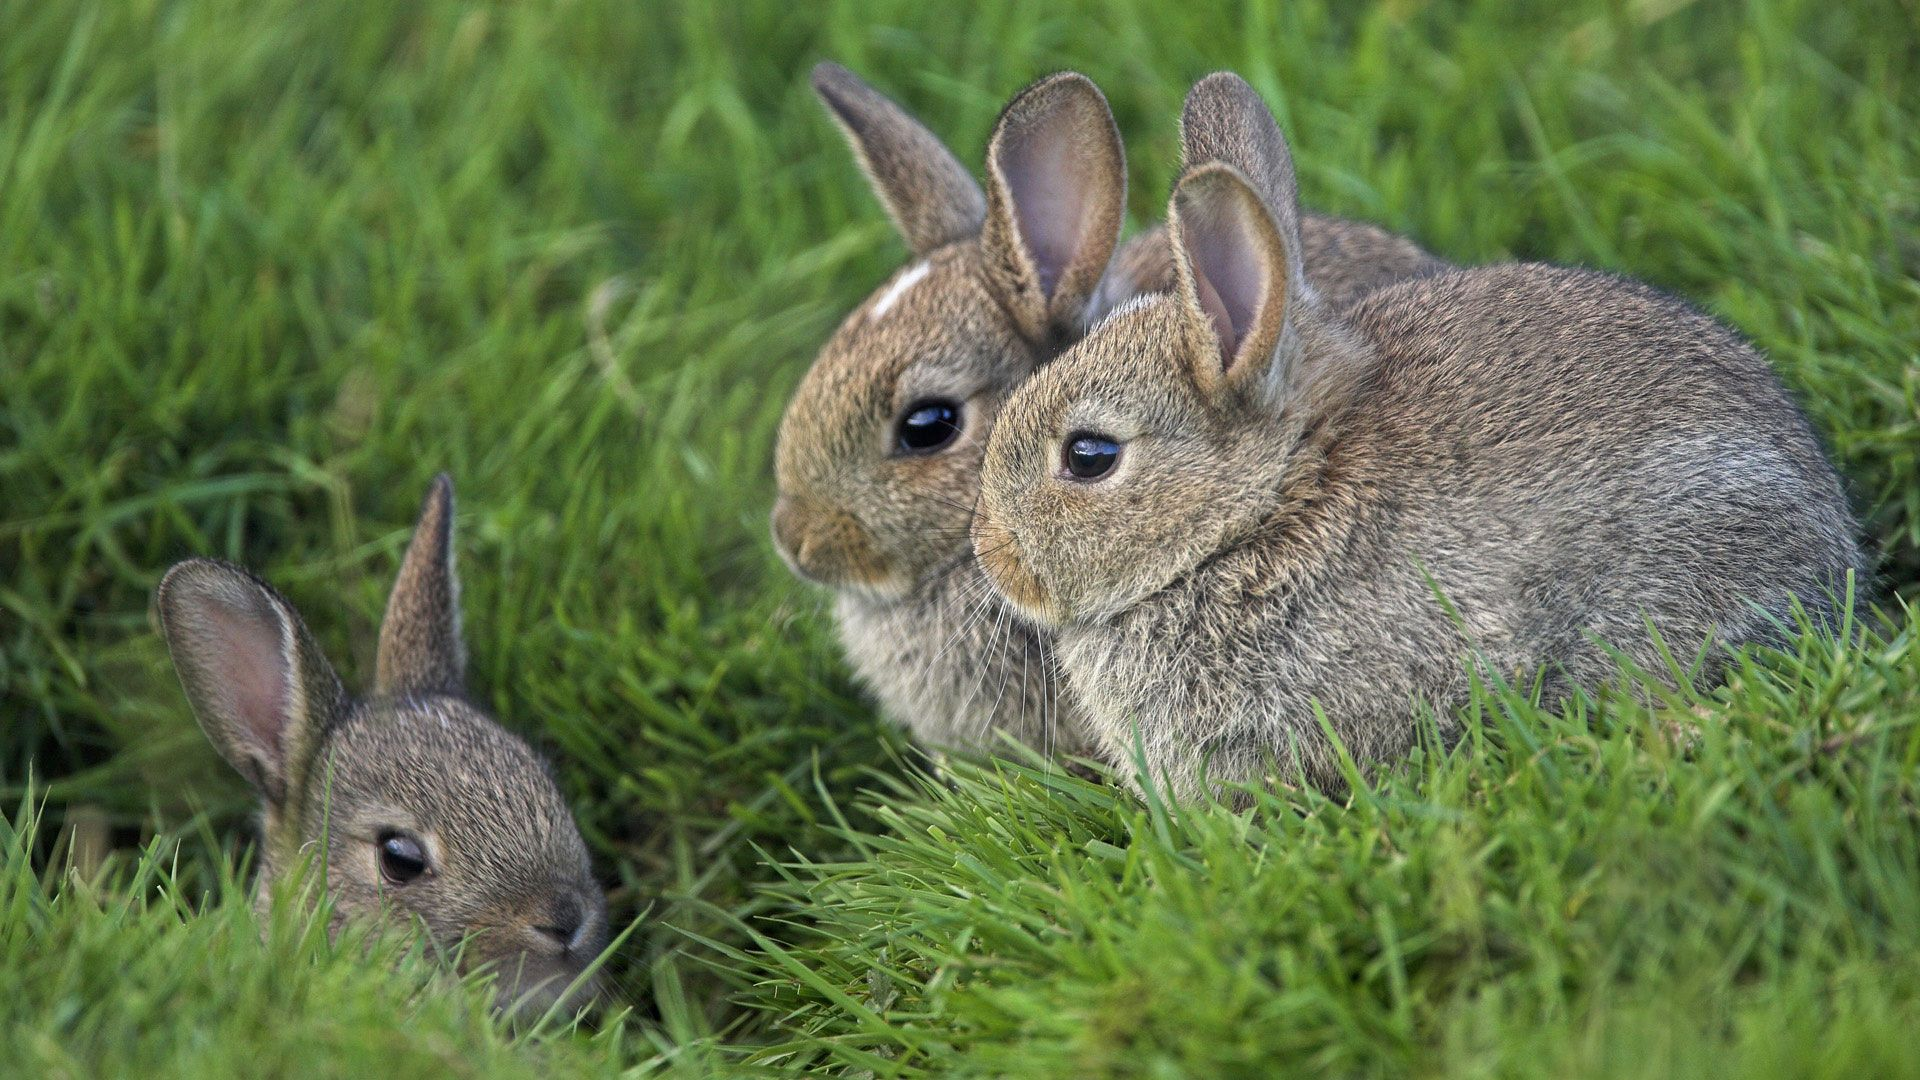 112288 download wallpaper Animals, Grass, Ears, Rabbits, Three, Eyes screensavers and pictures for free